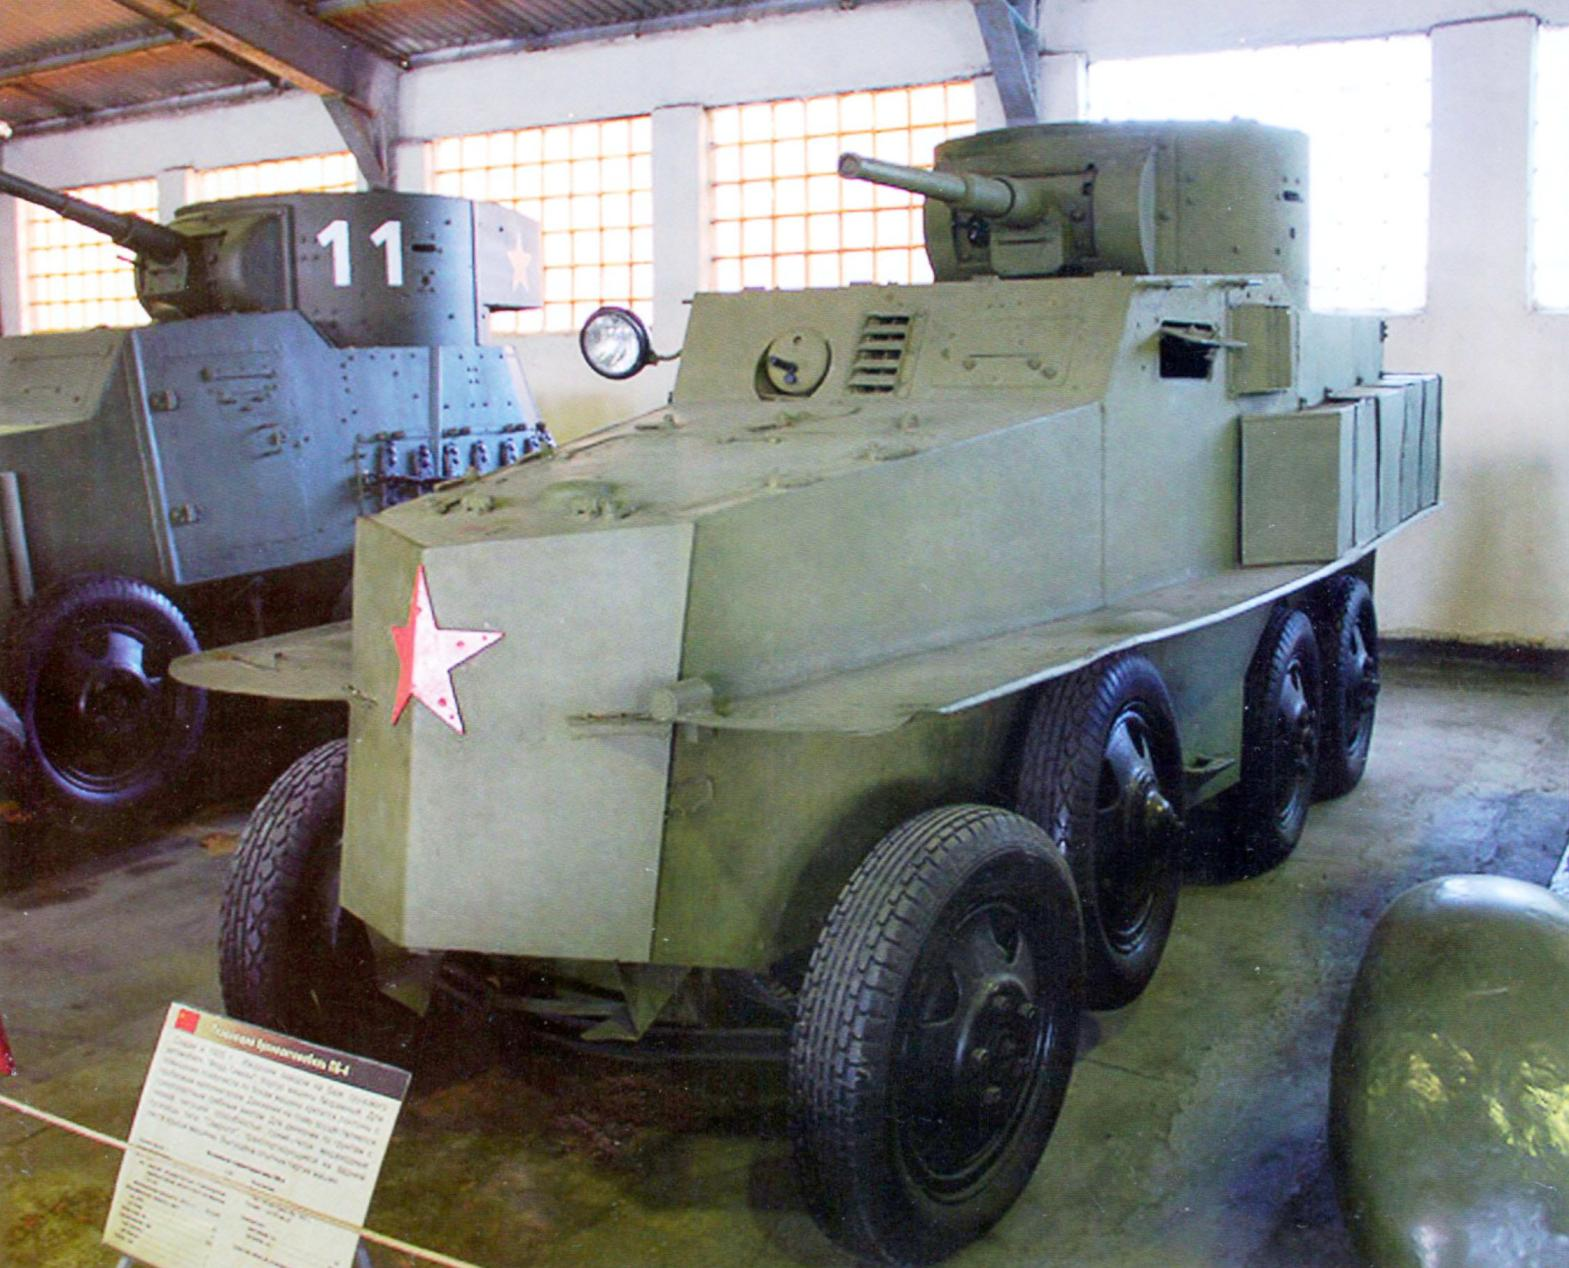 FLOATING ARMORED VEHICLES FOR THE RED ARMY